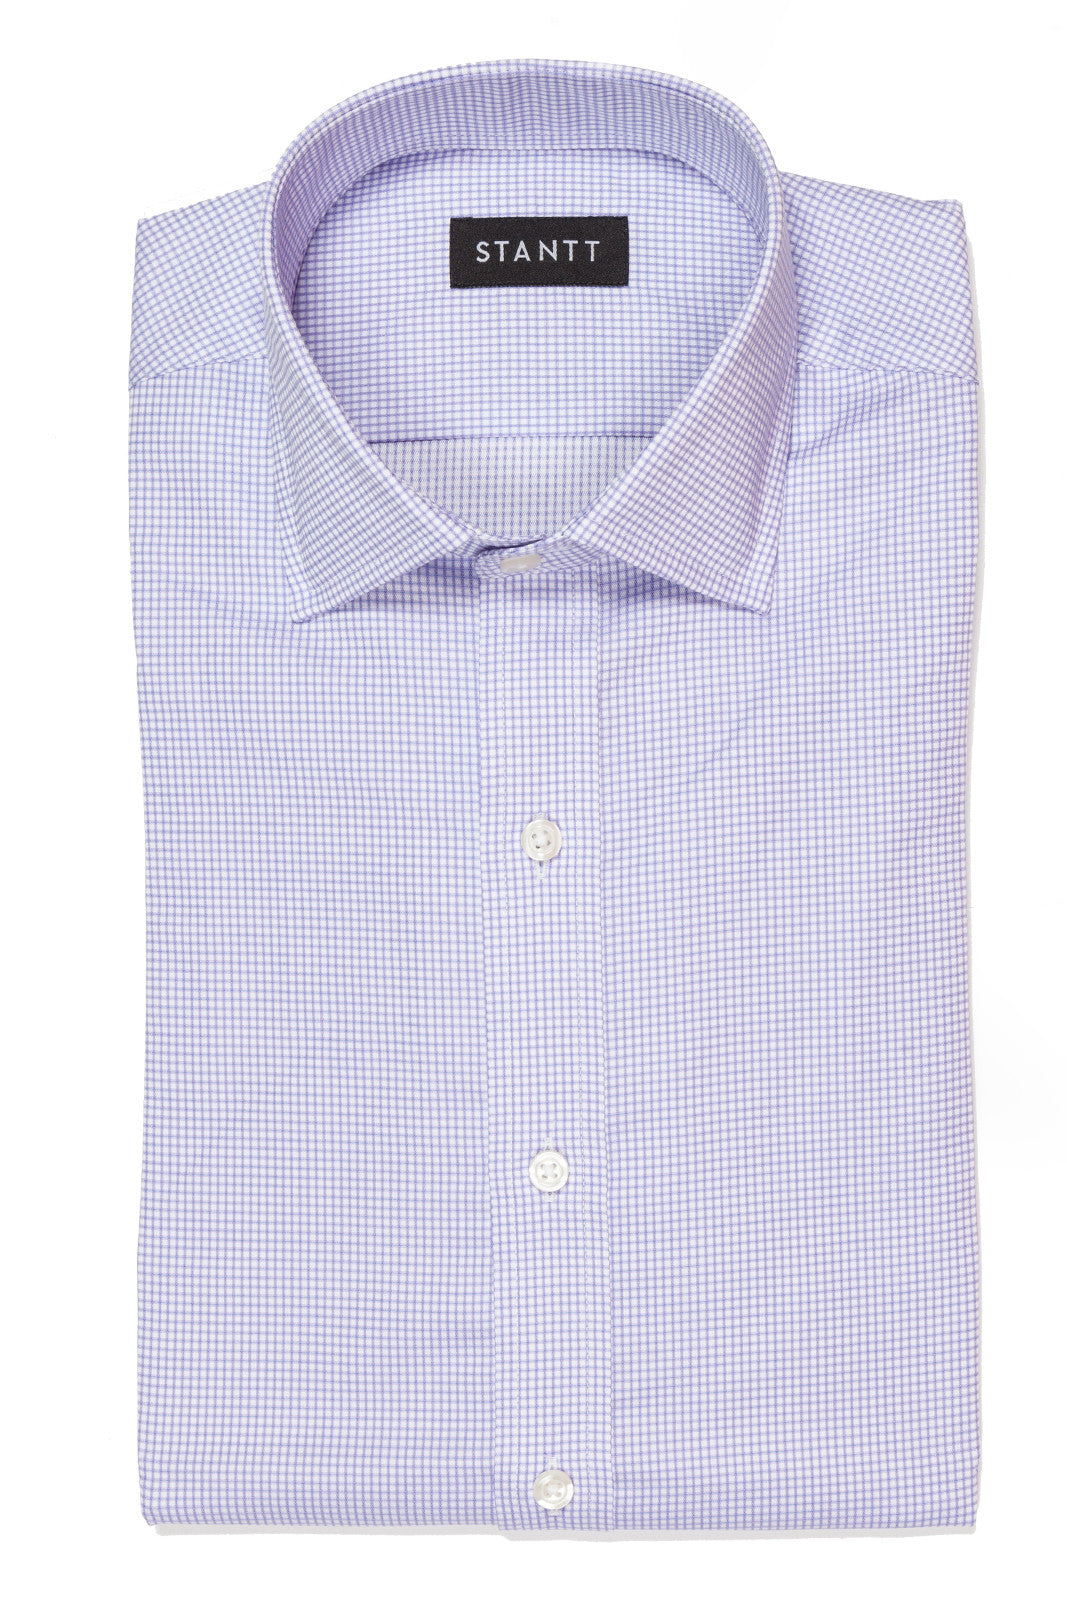 Wrinkle-Resistant Purple Accented Mini-Check: Semi-Spread Collar, Barrel Cuff